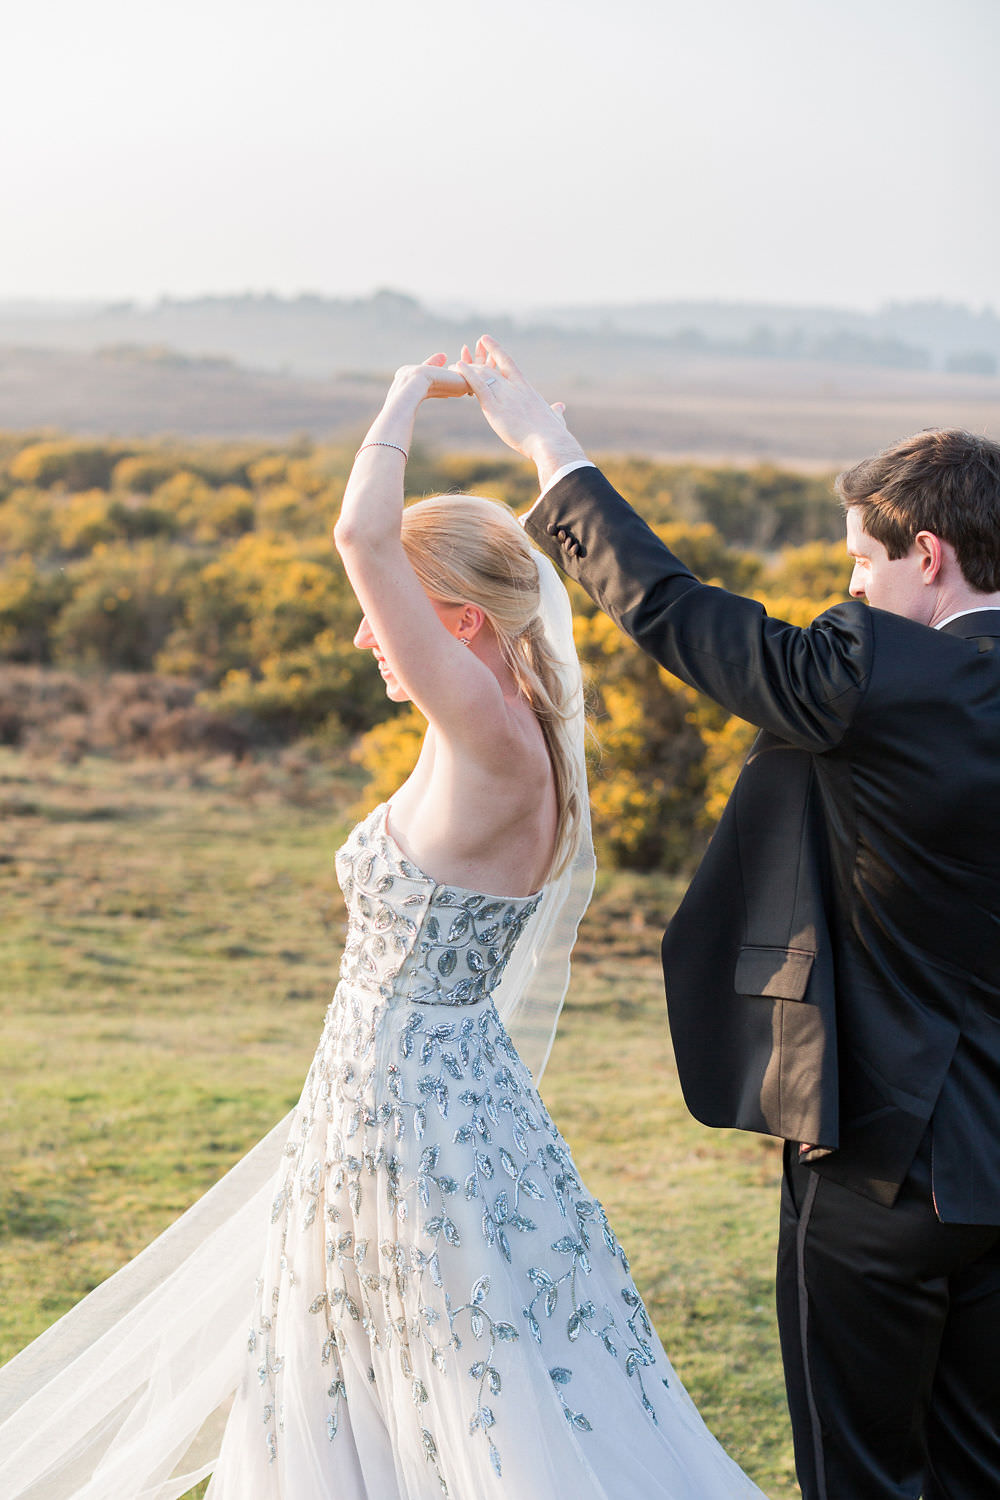 First Dance Vintage Couture Dress Gown Bride Bridal Paris Strapless Sequin Embellished Veil Highcliffe Castle Wedding Bowtie and Belle Photography